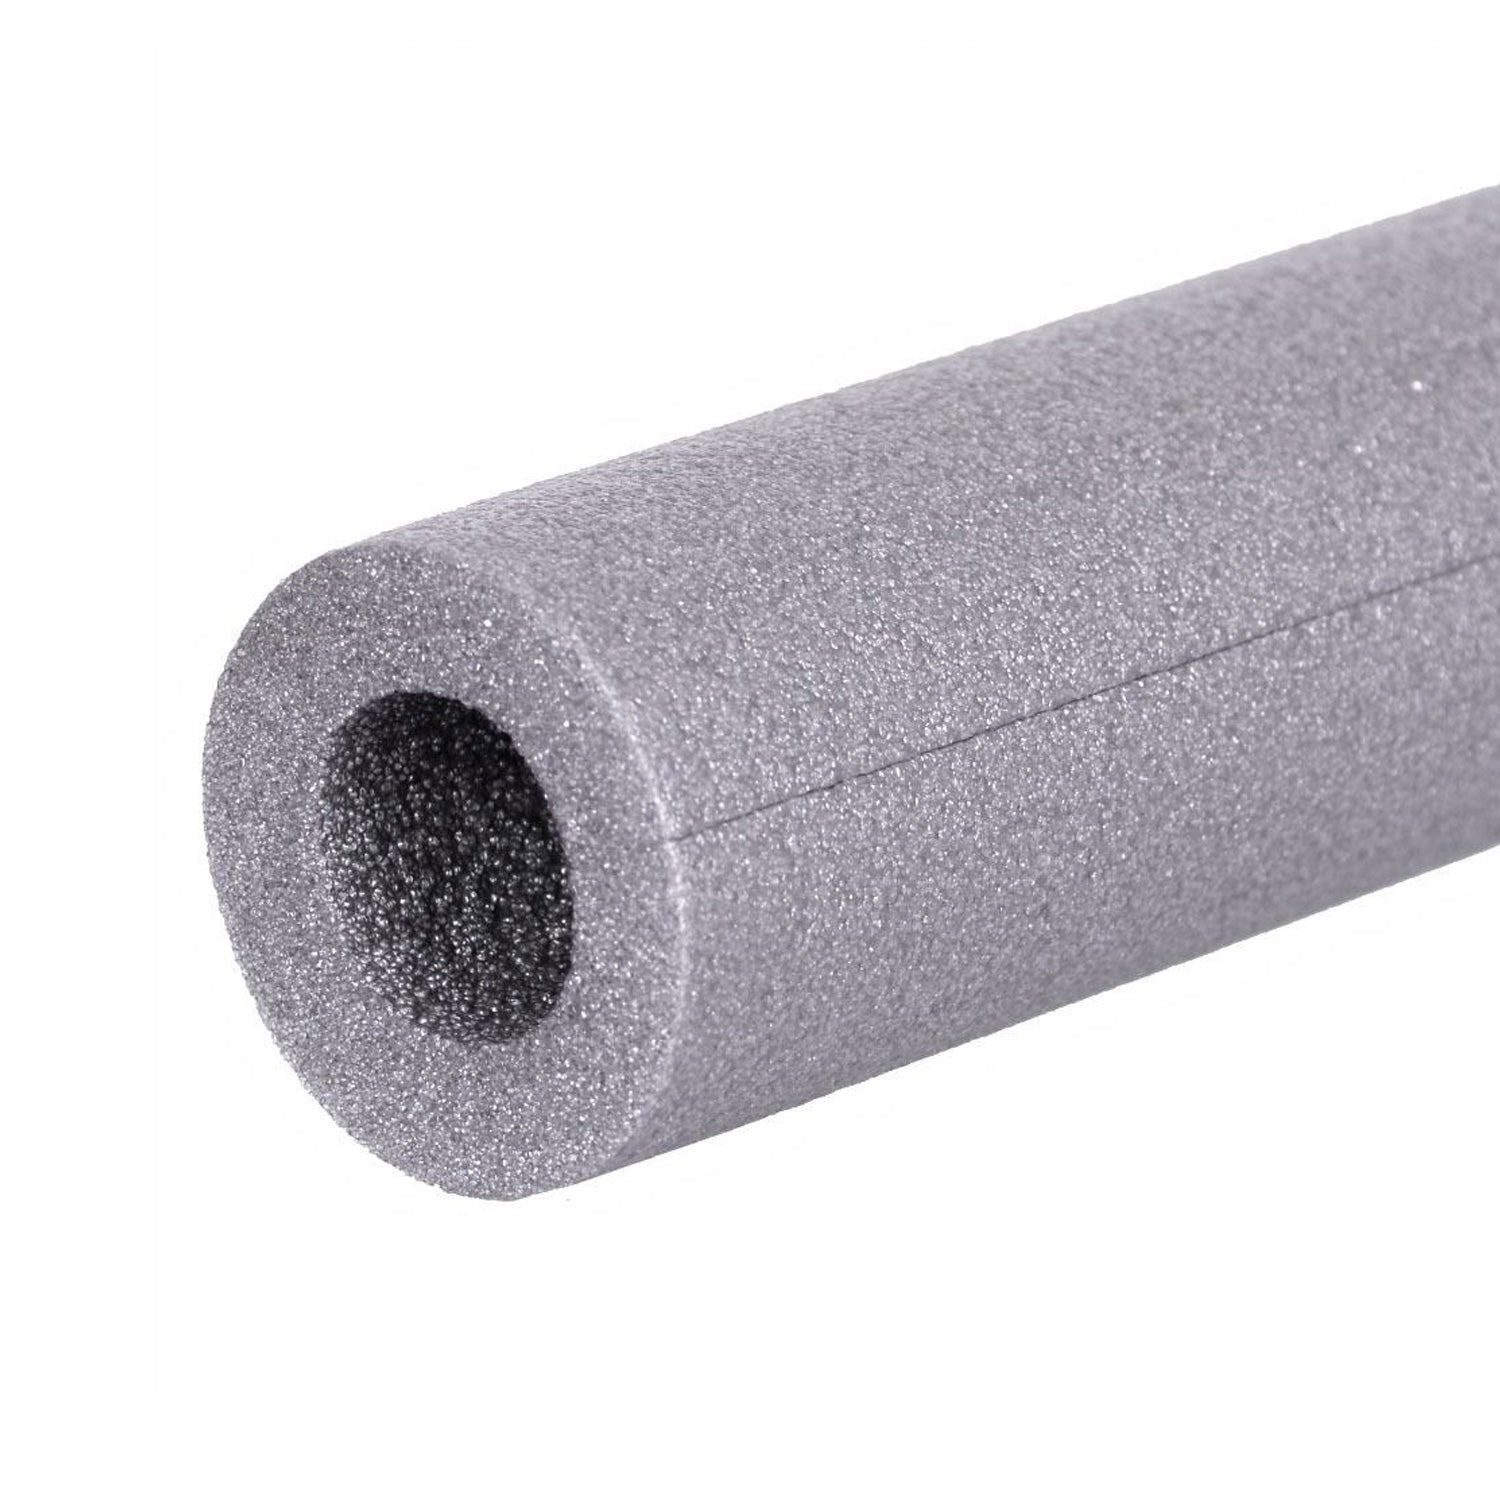 Pipe Isulation 22mm x 1m x 13mm O.D